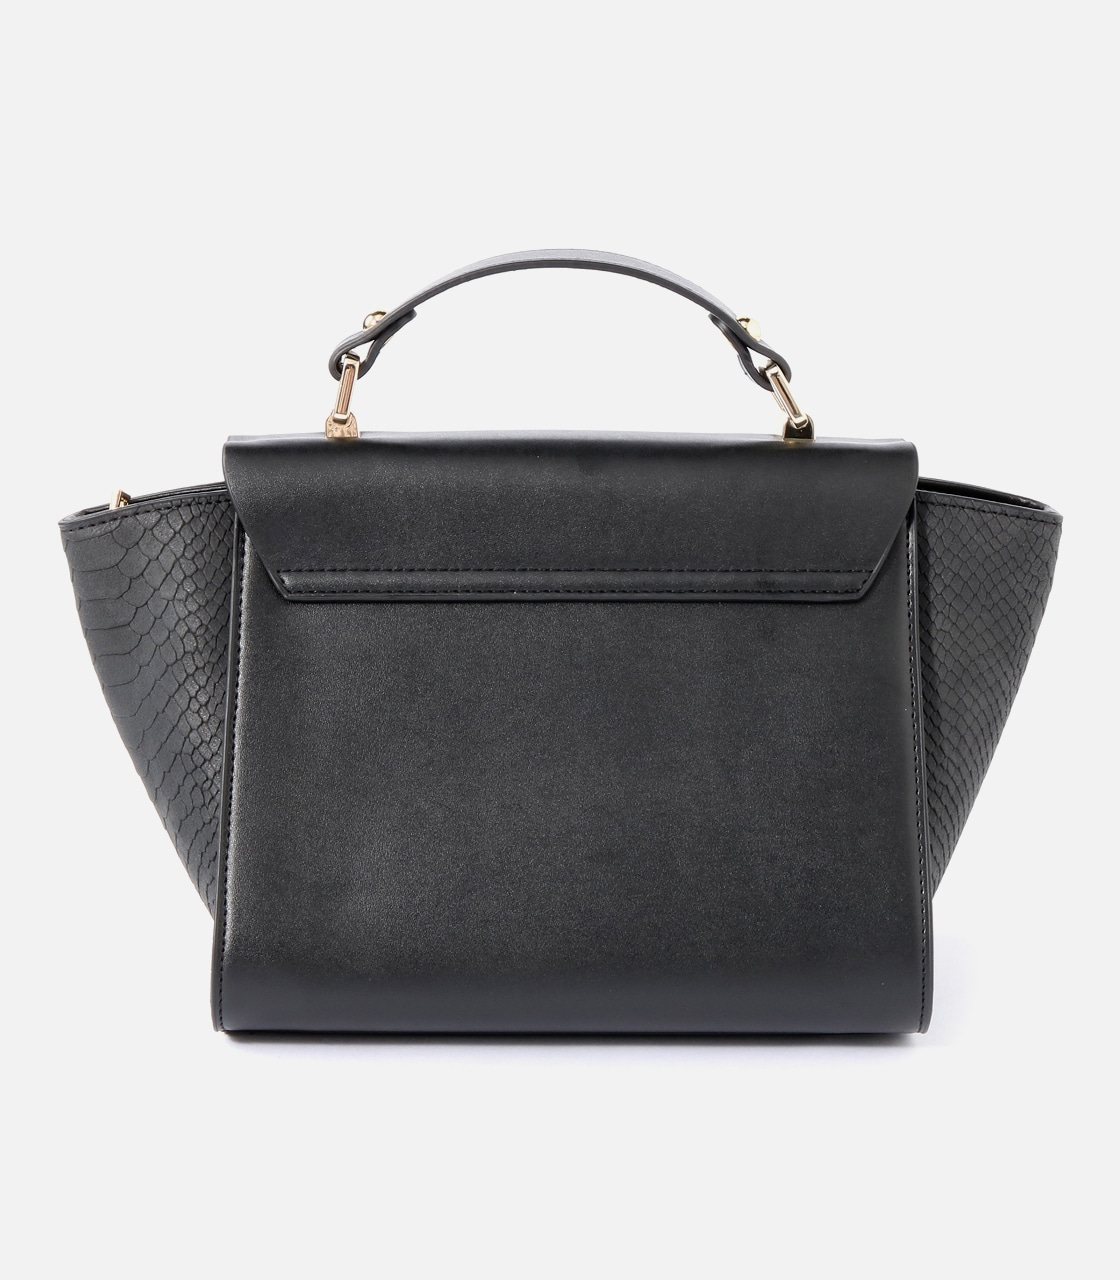 【AZUL BY MOUSSY】SQUARE METAL BAG 詳細画像 BLK 2